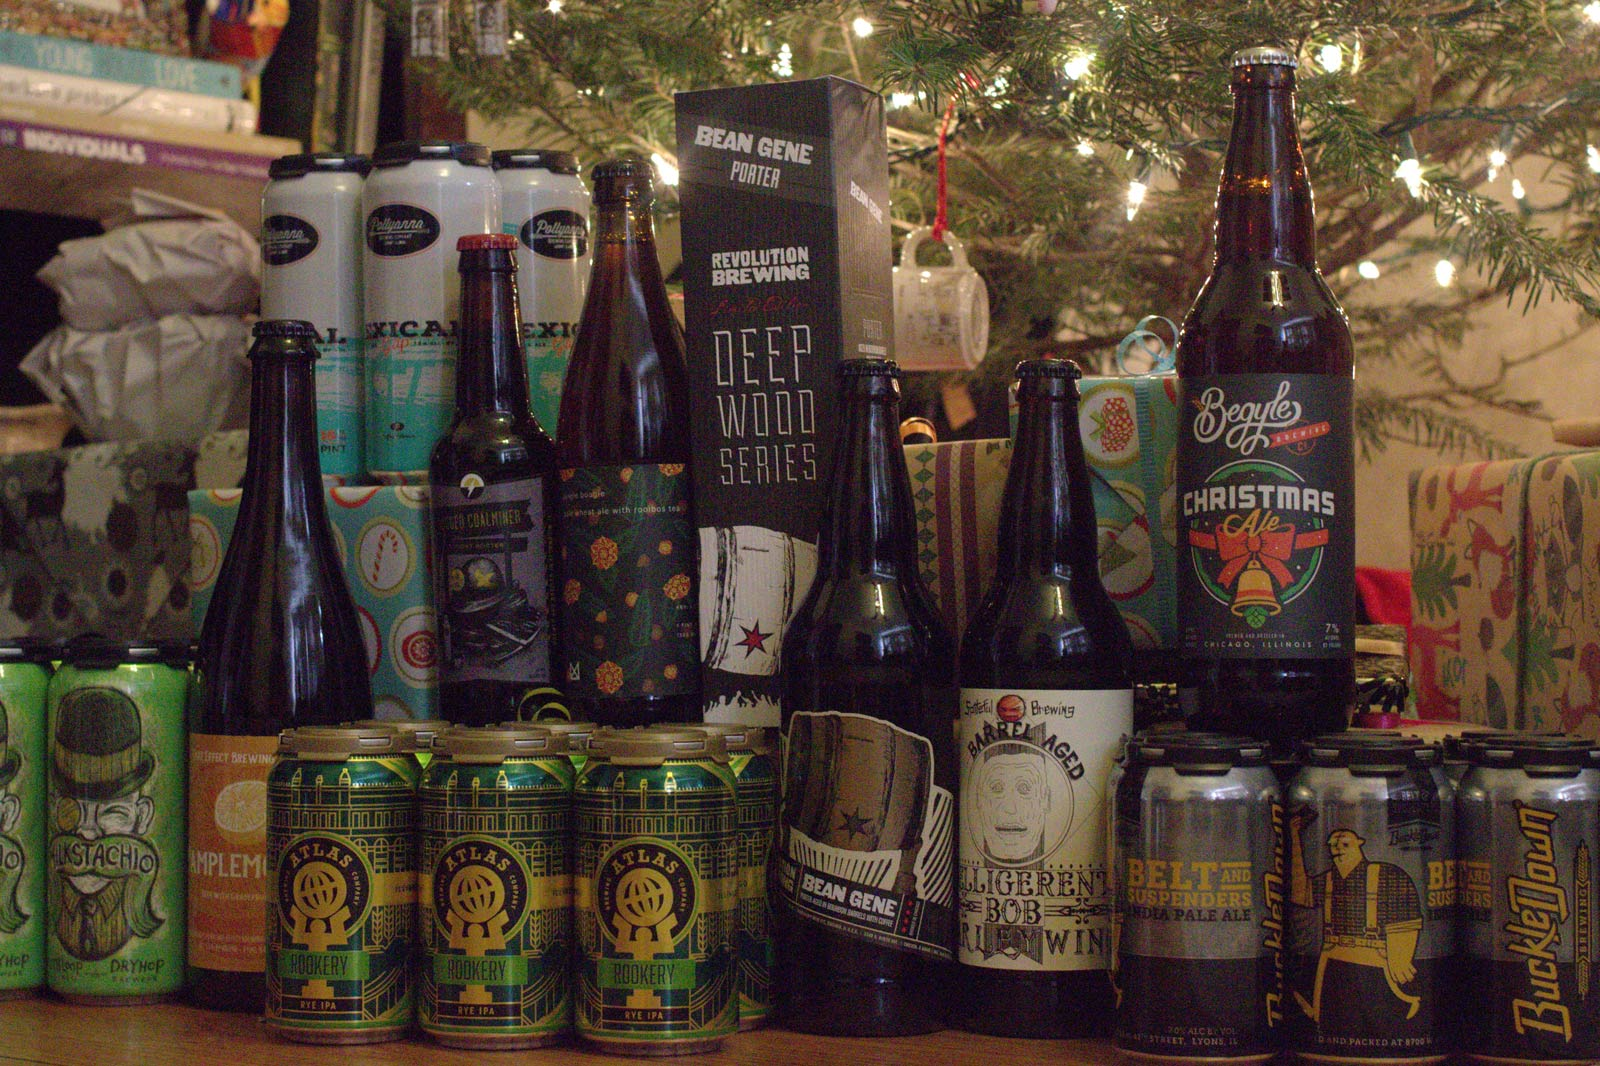 The Hop Review's Holiday Gift Guide